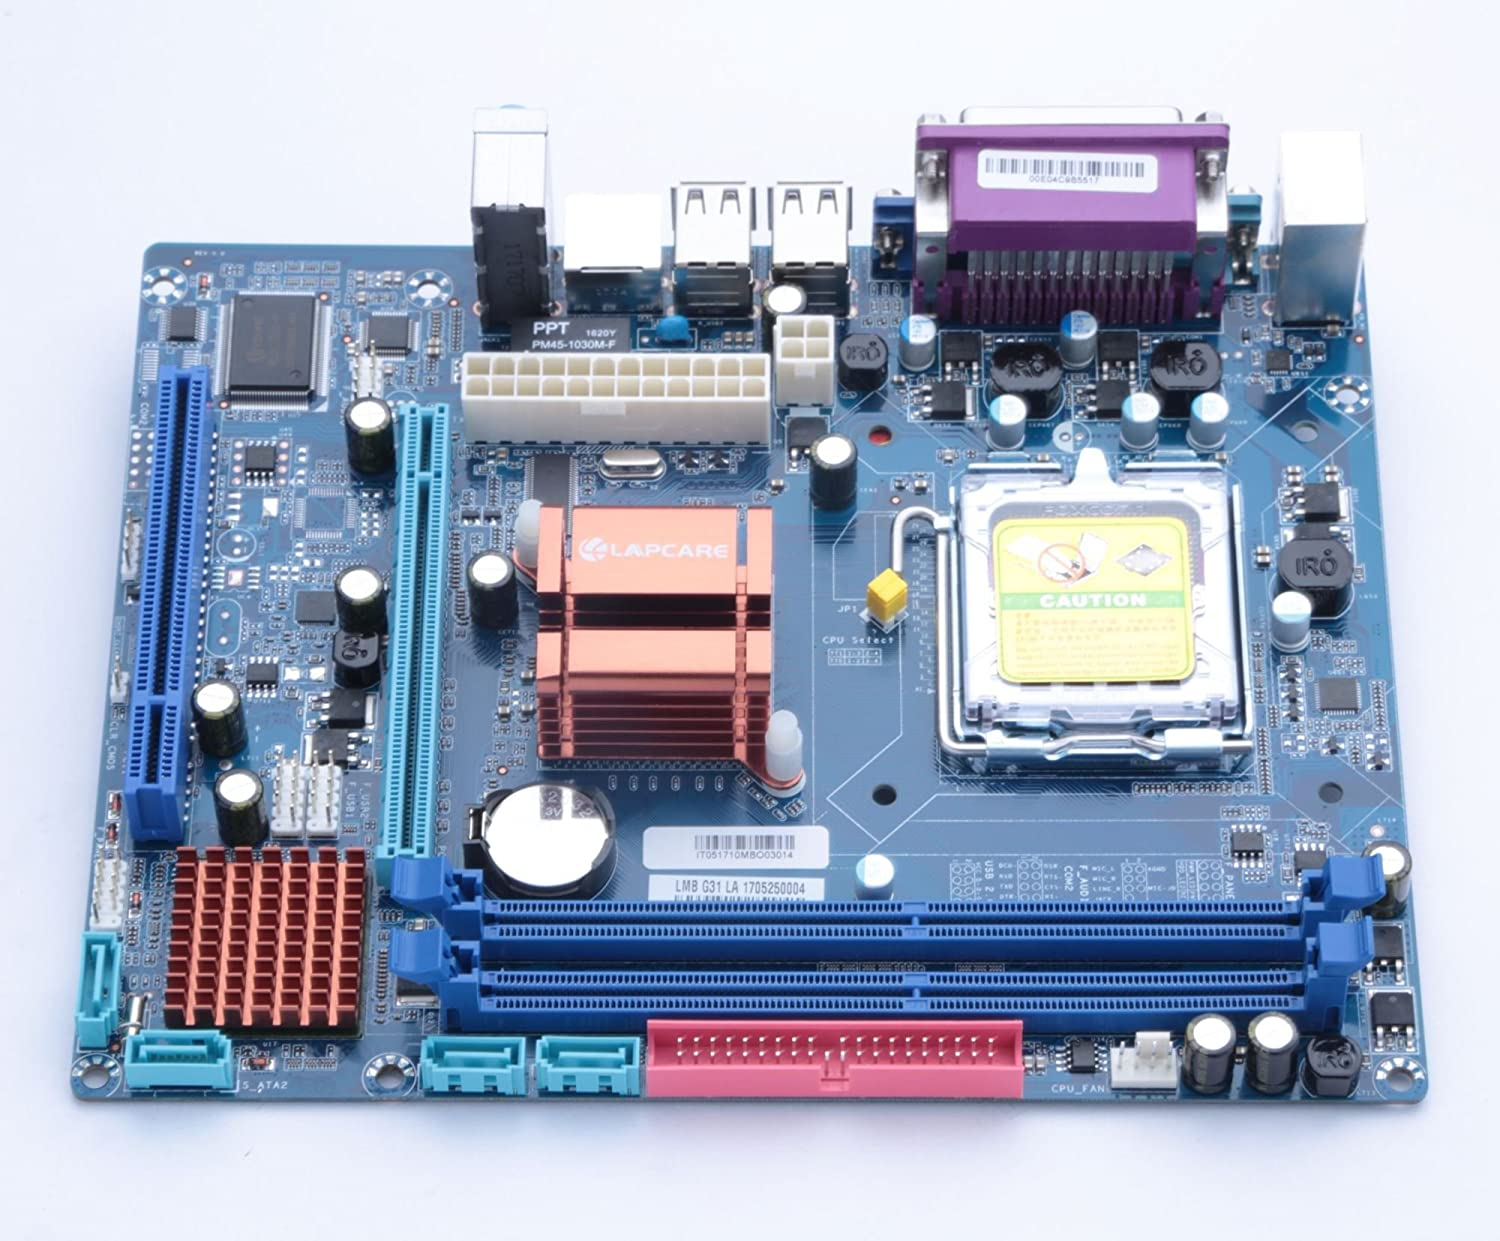 INTEL G31 MOTHERBOARD DOWNLOAD DRIVER